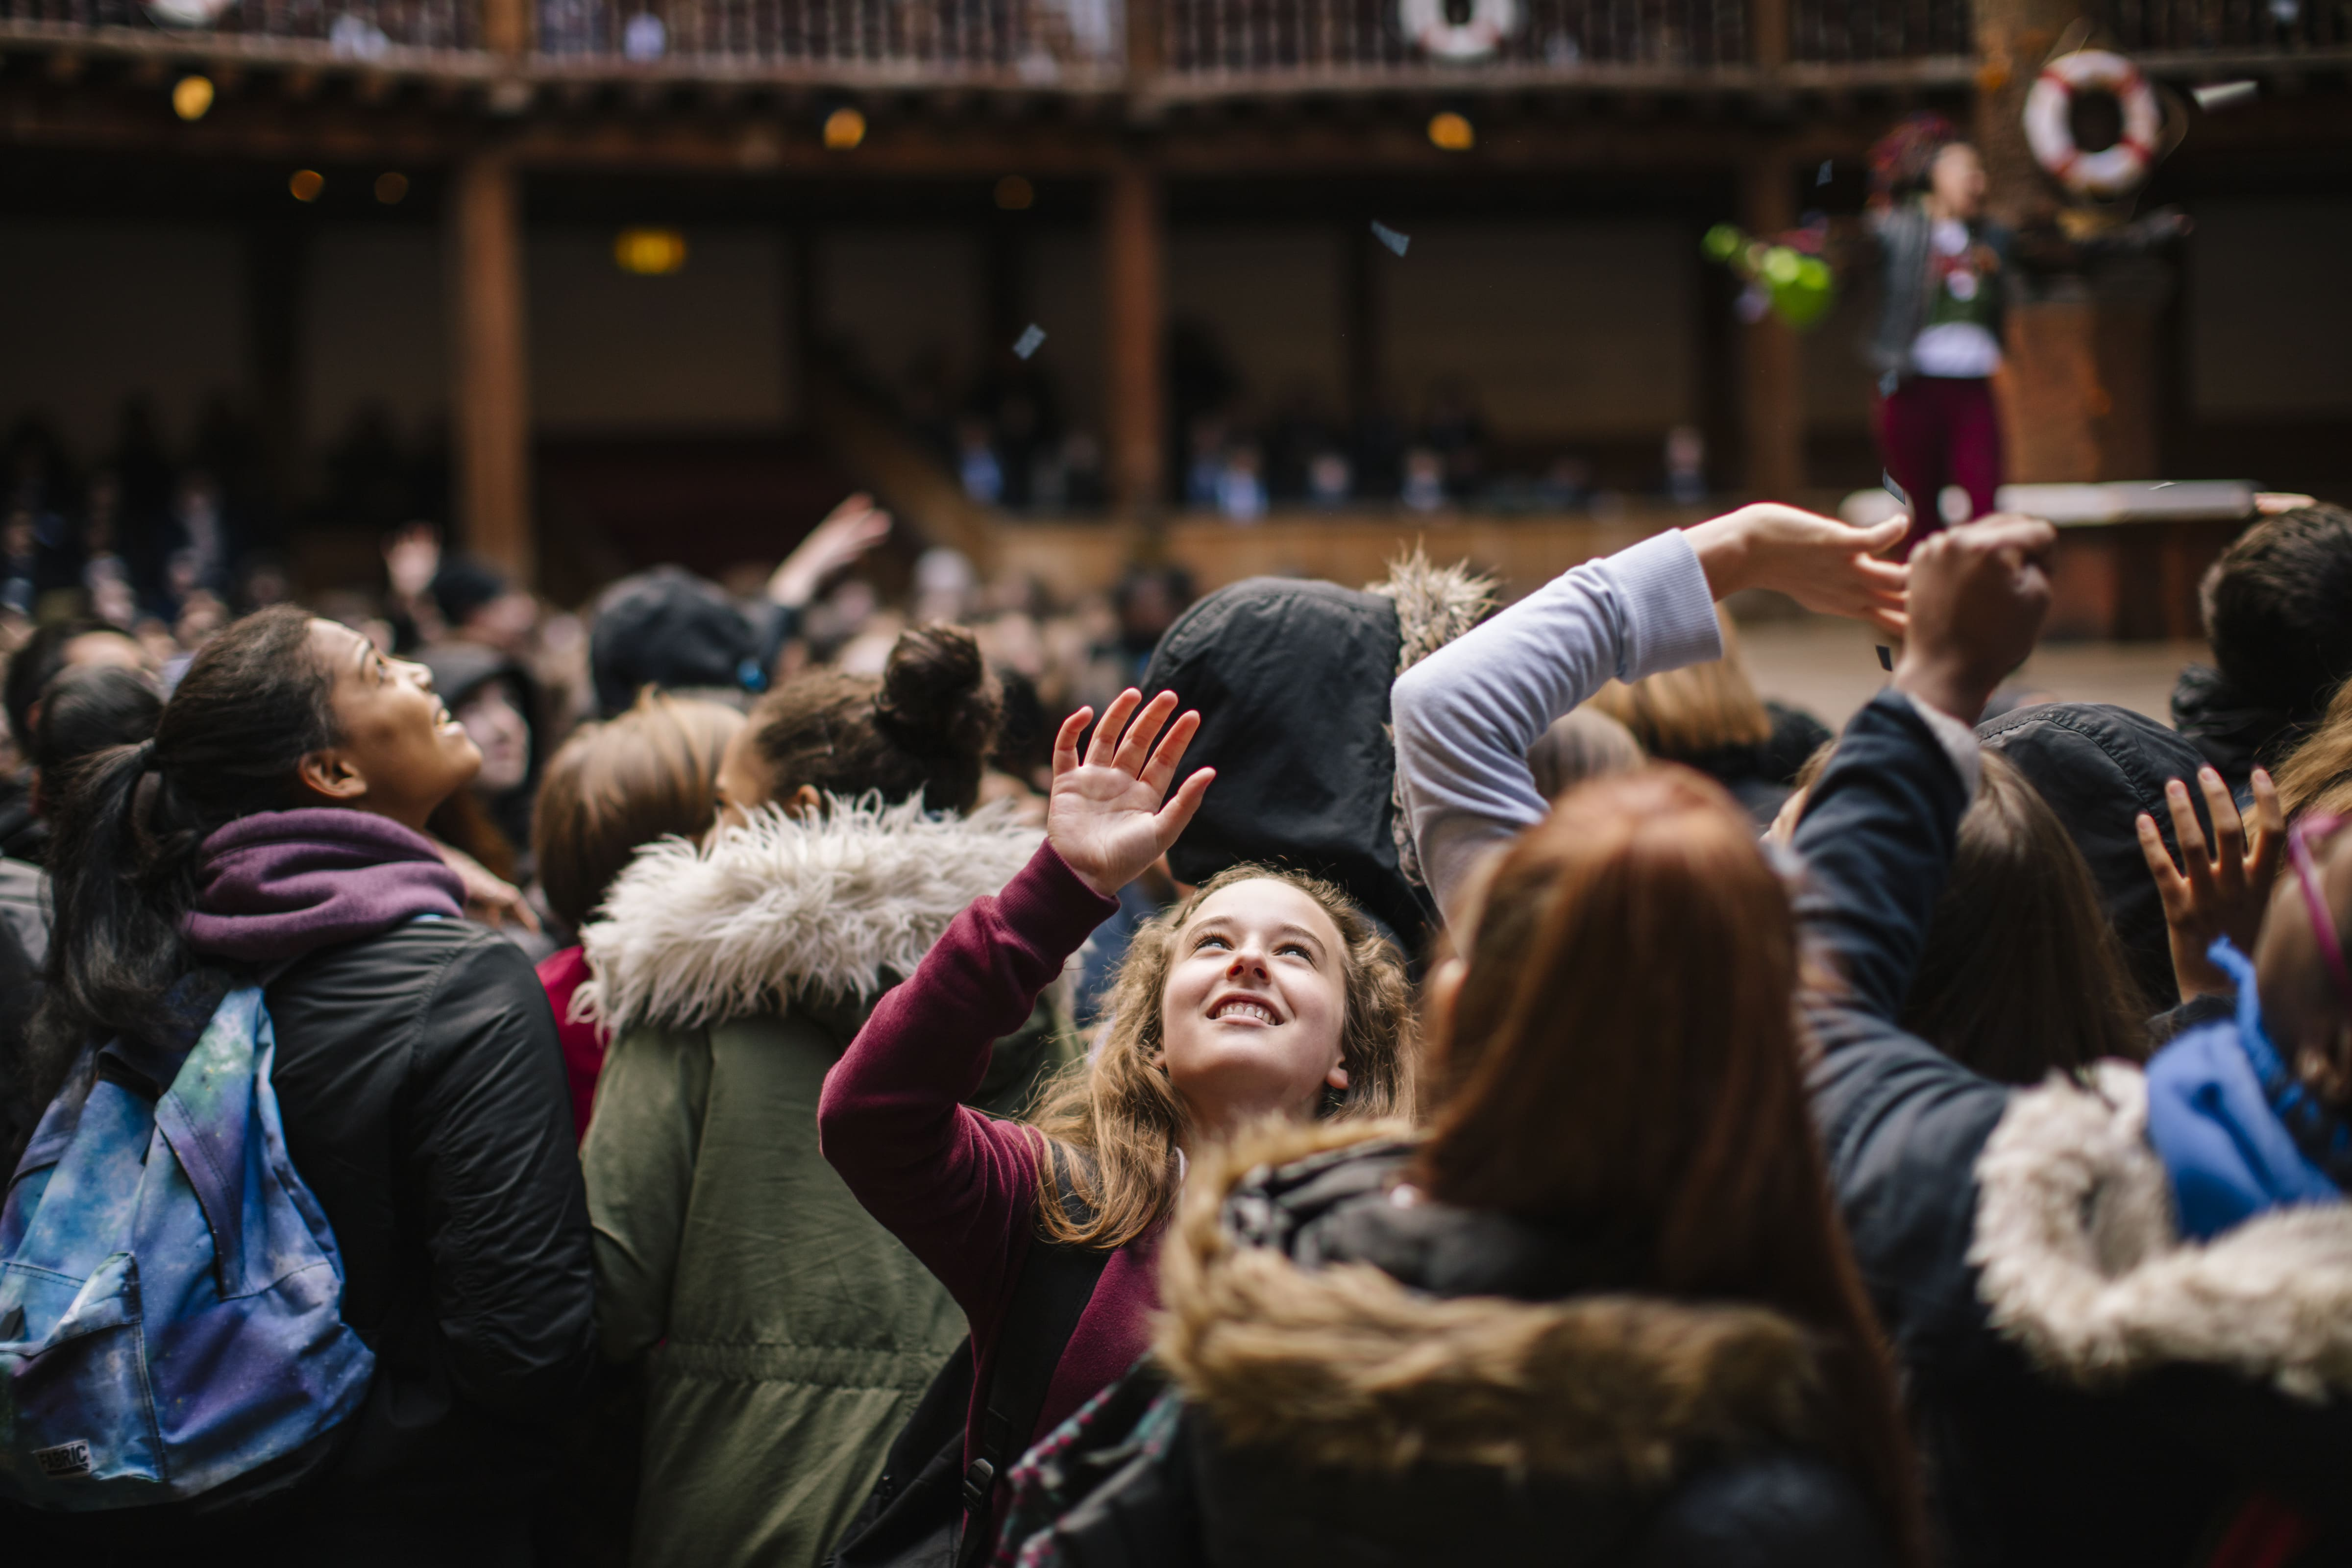 [IMAGE] Audience of children/young adults in school uniforms watching a Playing Shakespeare with Deutsche Bank performance from the Yard, confetti is falling, they are looking up and smiling, one girl in particular is slightly facing the camera and smiling whilst reaching up to the confetti